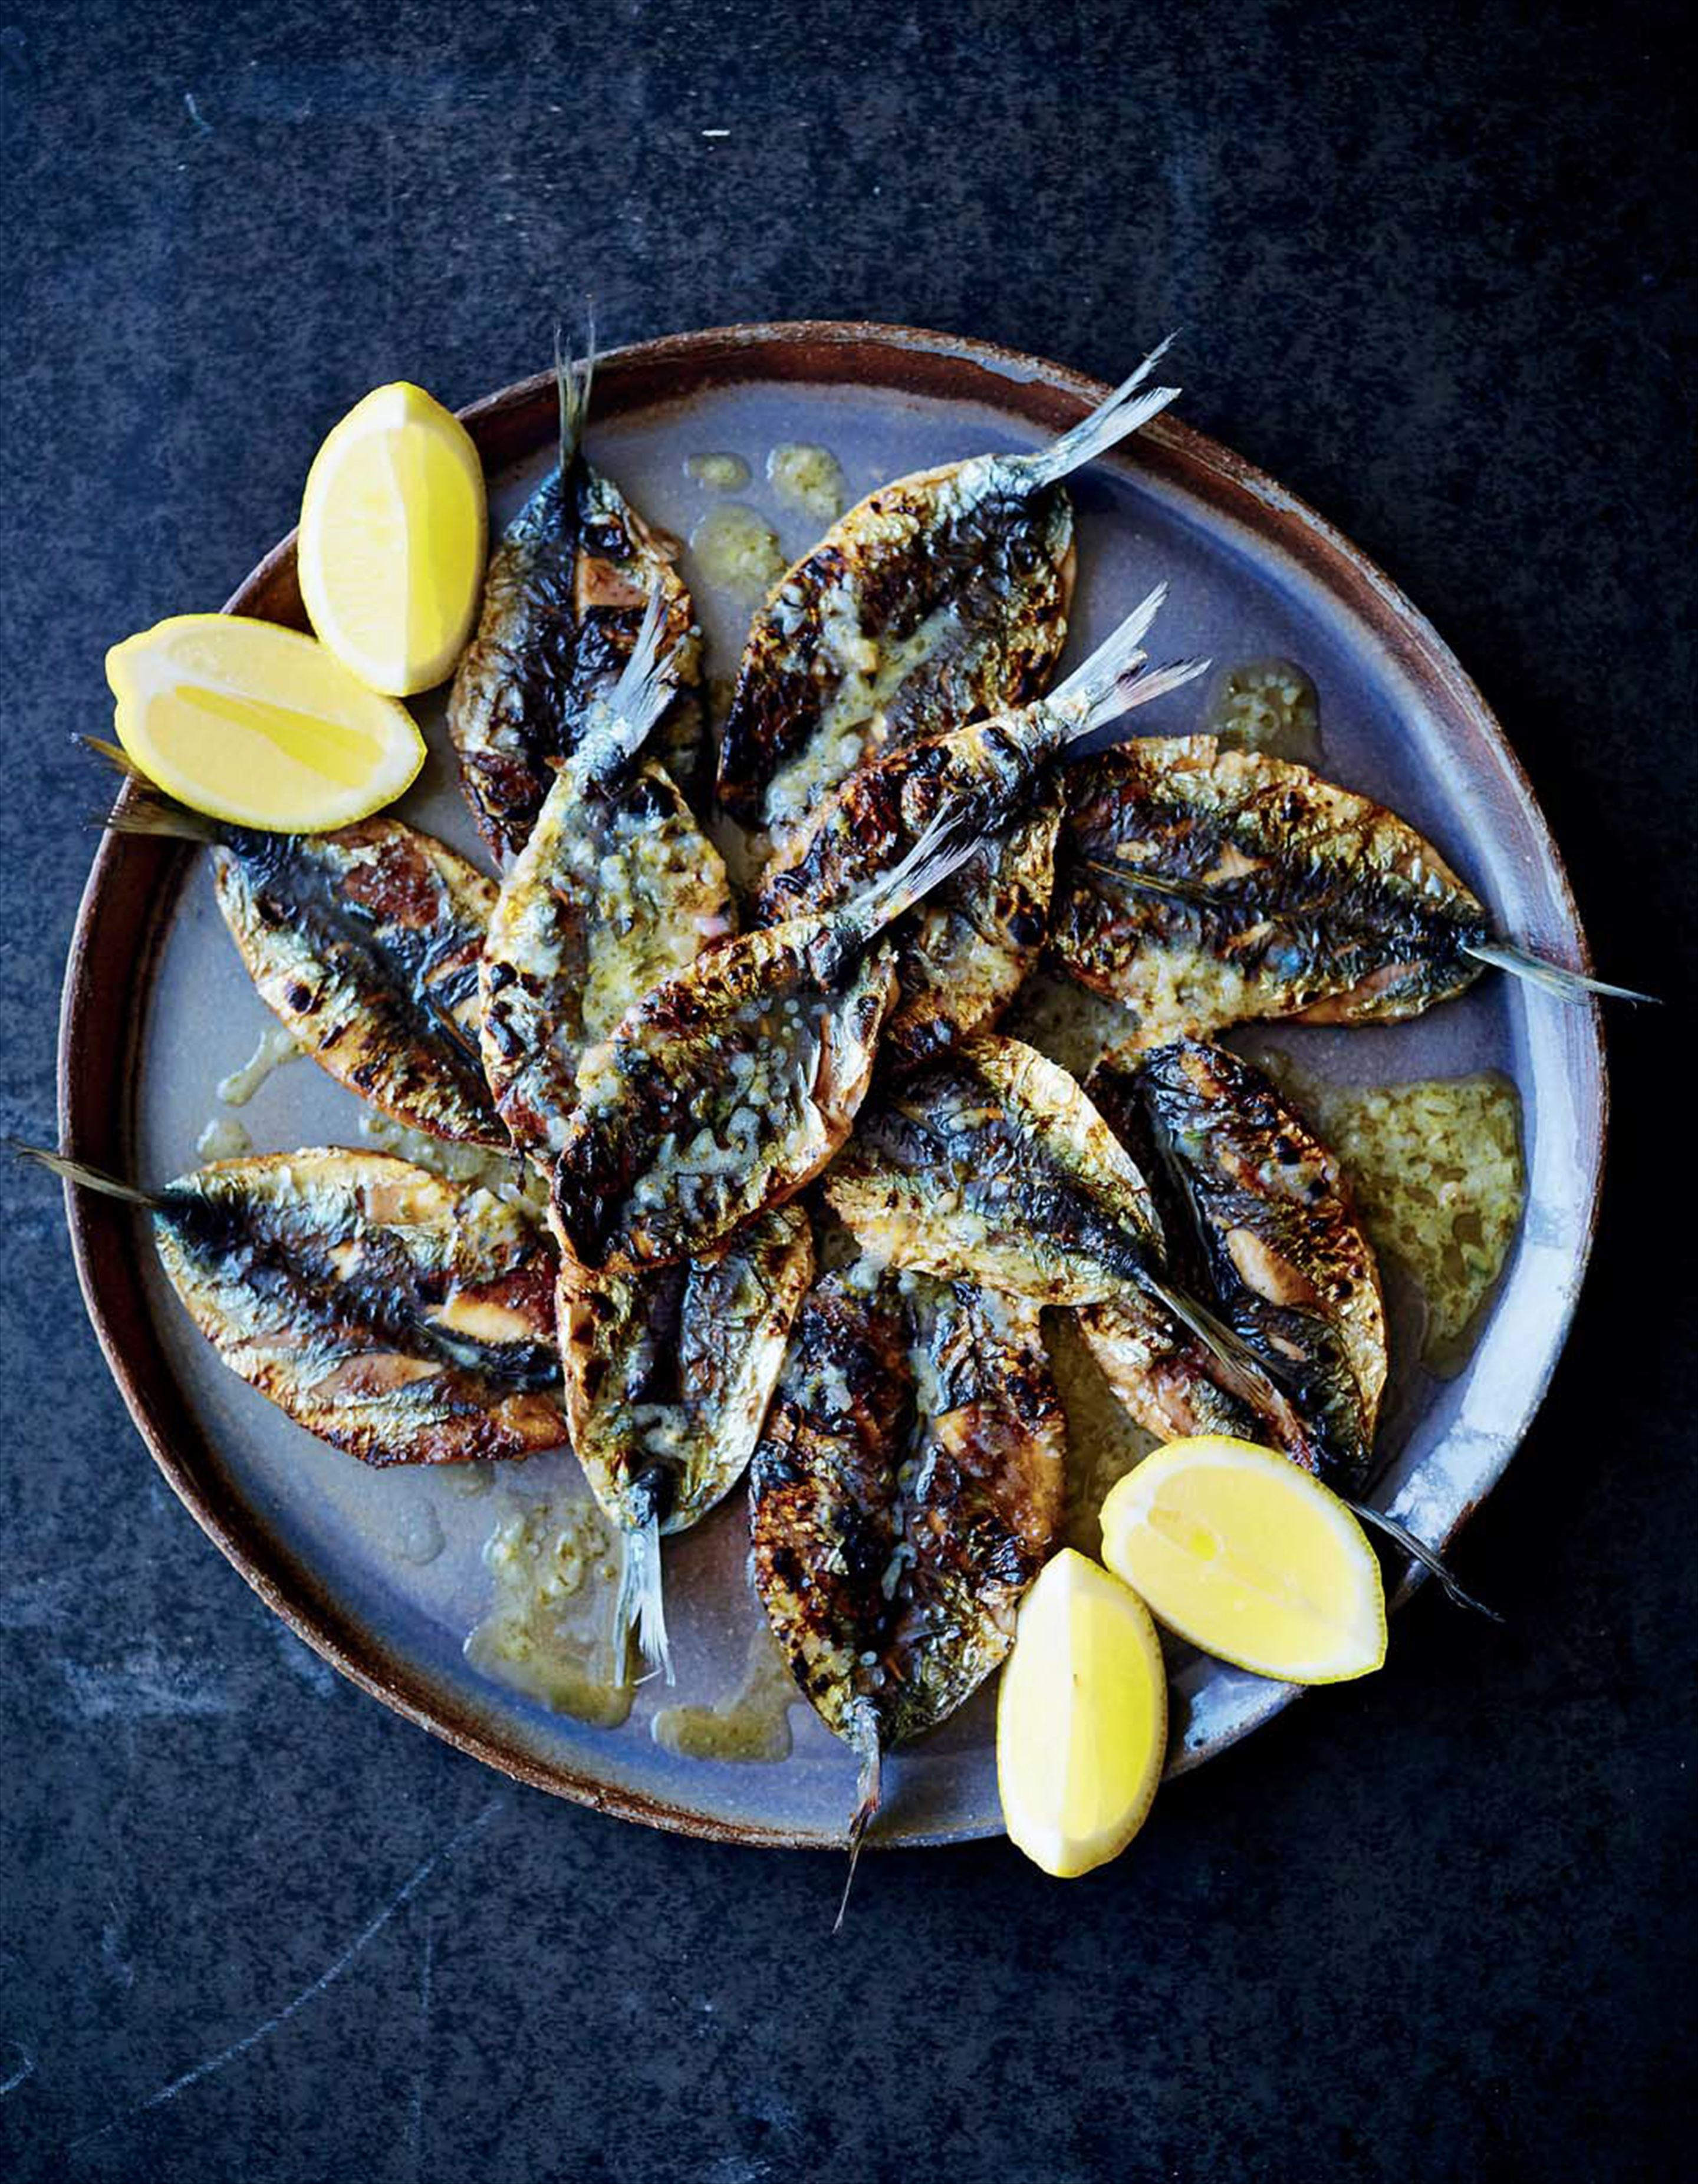 Barbecued sardines with parsley, roast garlic and lemon butter